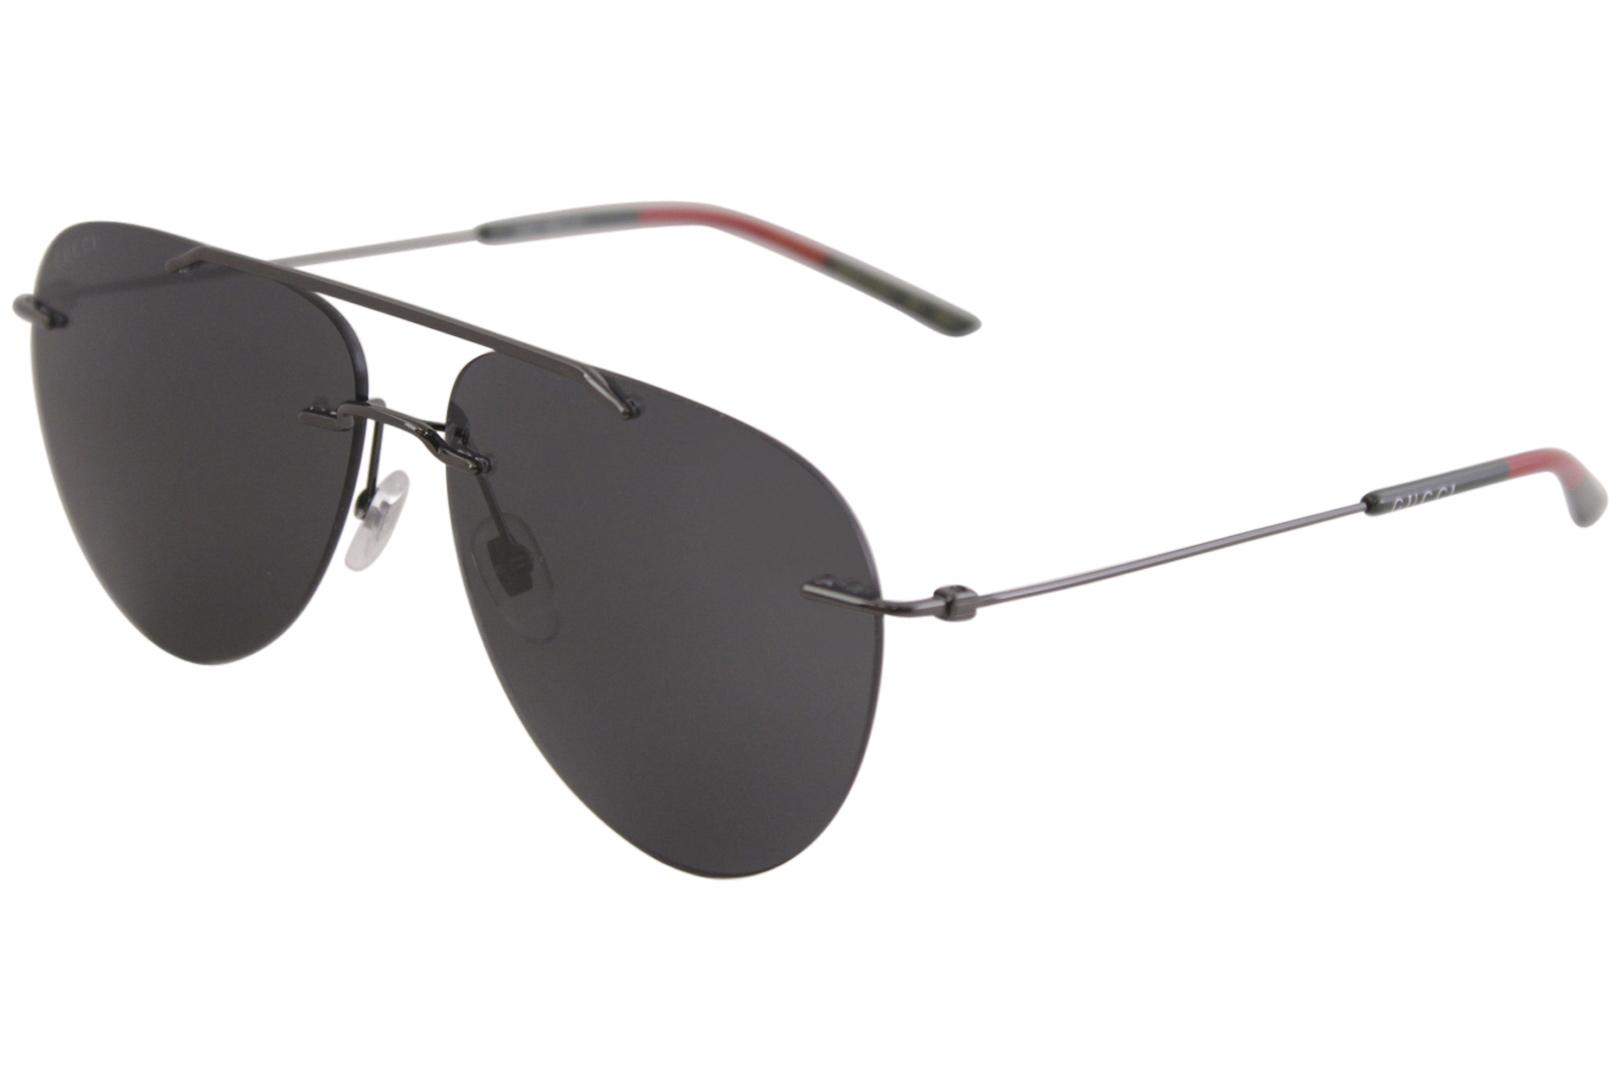 Gucci Men's GG0397S GG/0397/S Fashion Pilot Sunglasses